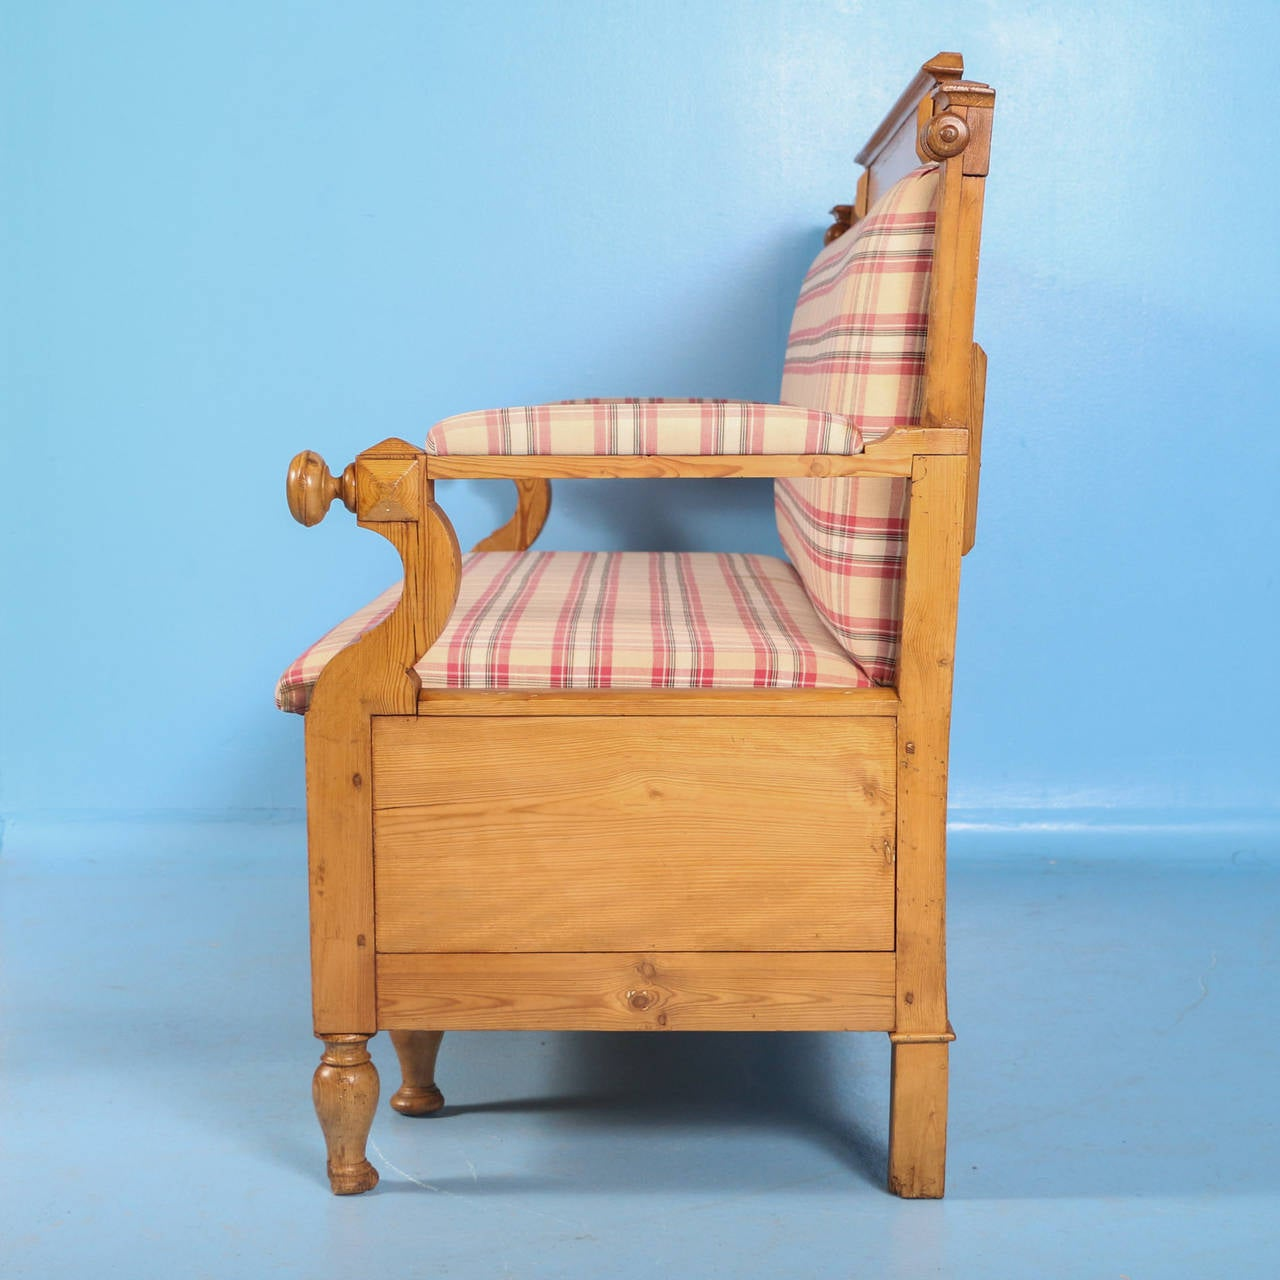 Antique Swedish Pine Bench with Upholstered Seat, circa 1890 For Sale 1